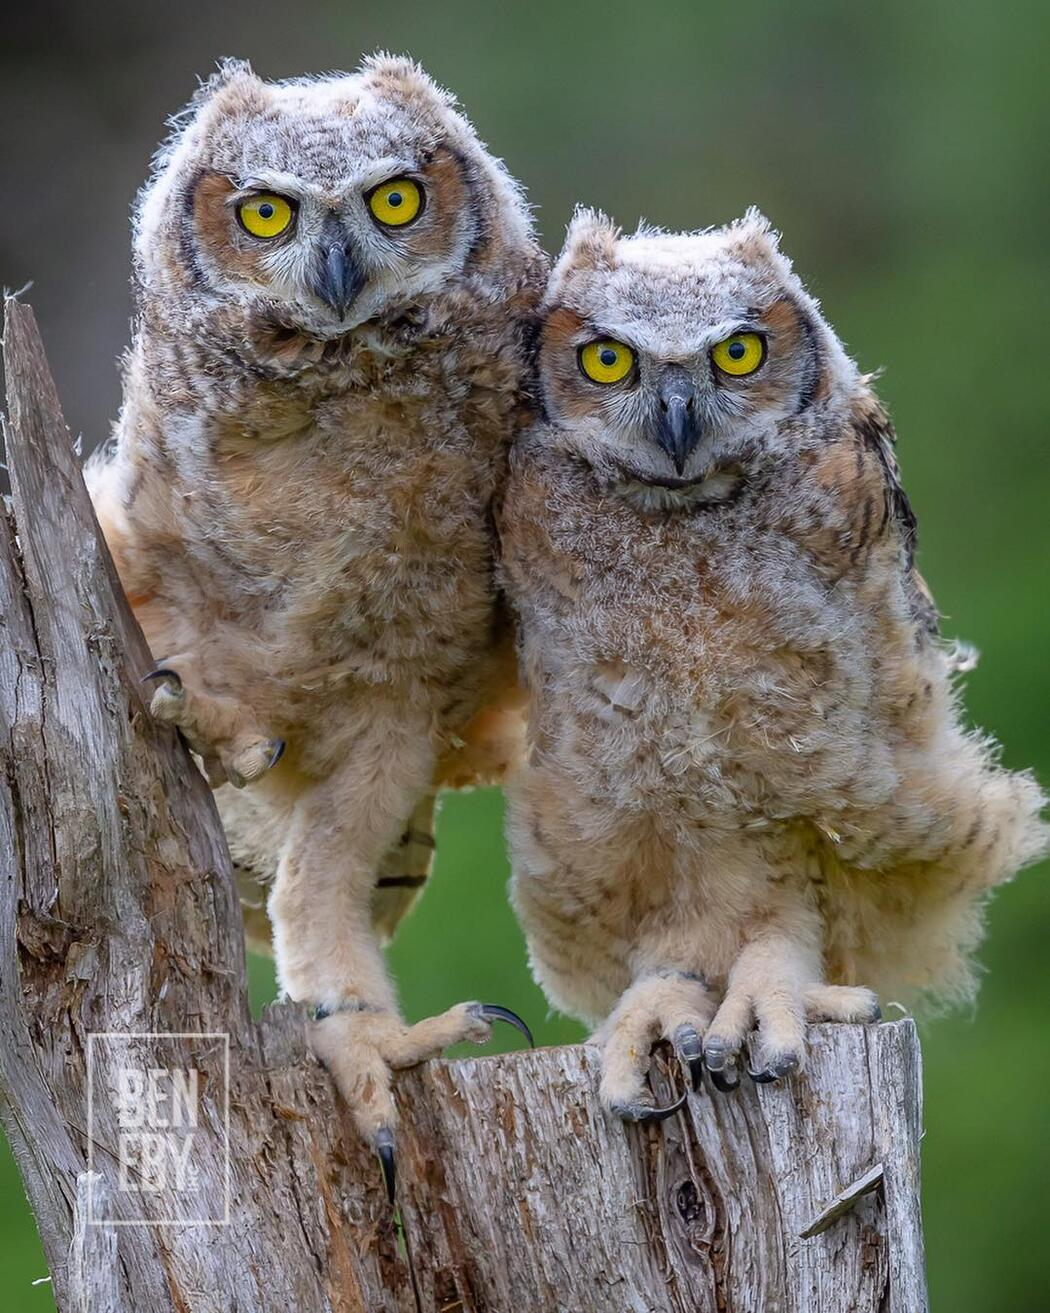 Two owlets sitting on a wooden post.